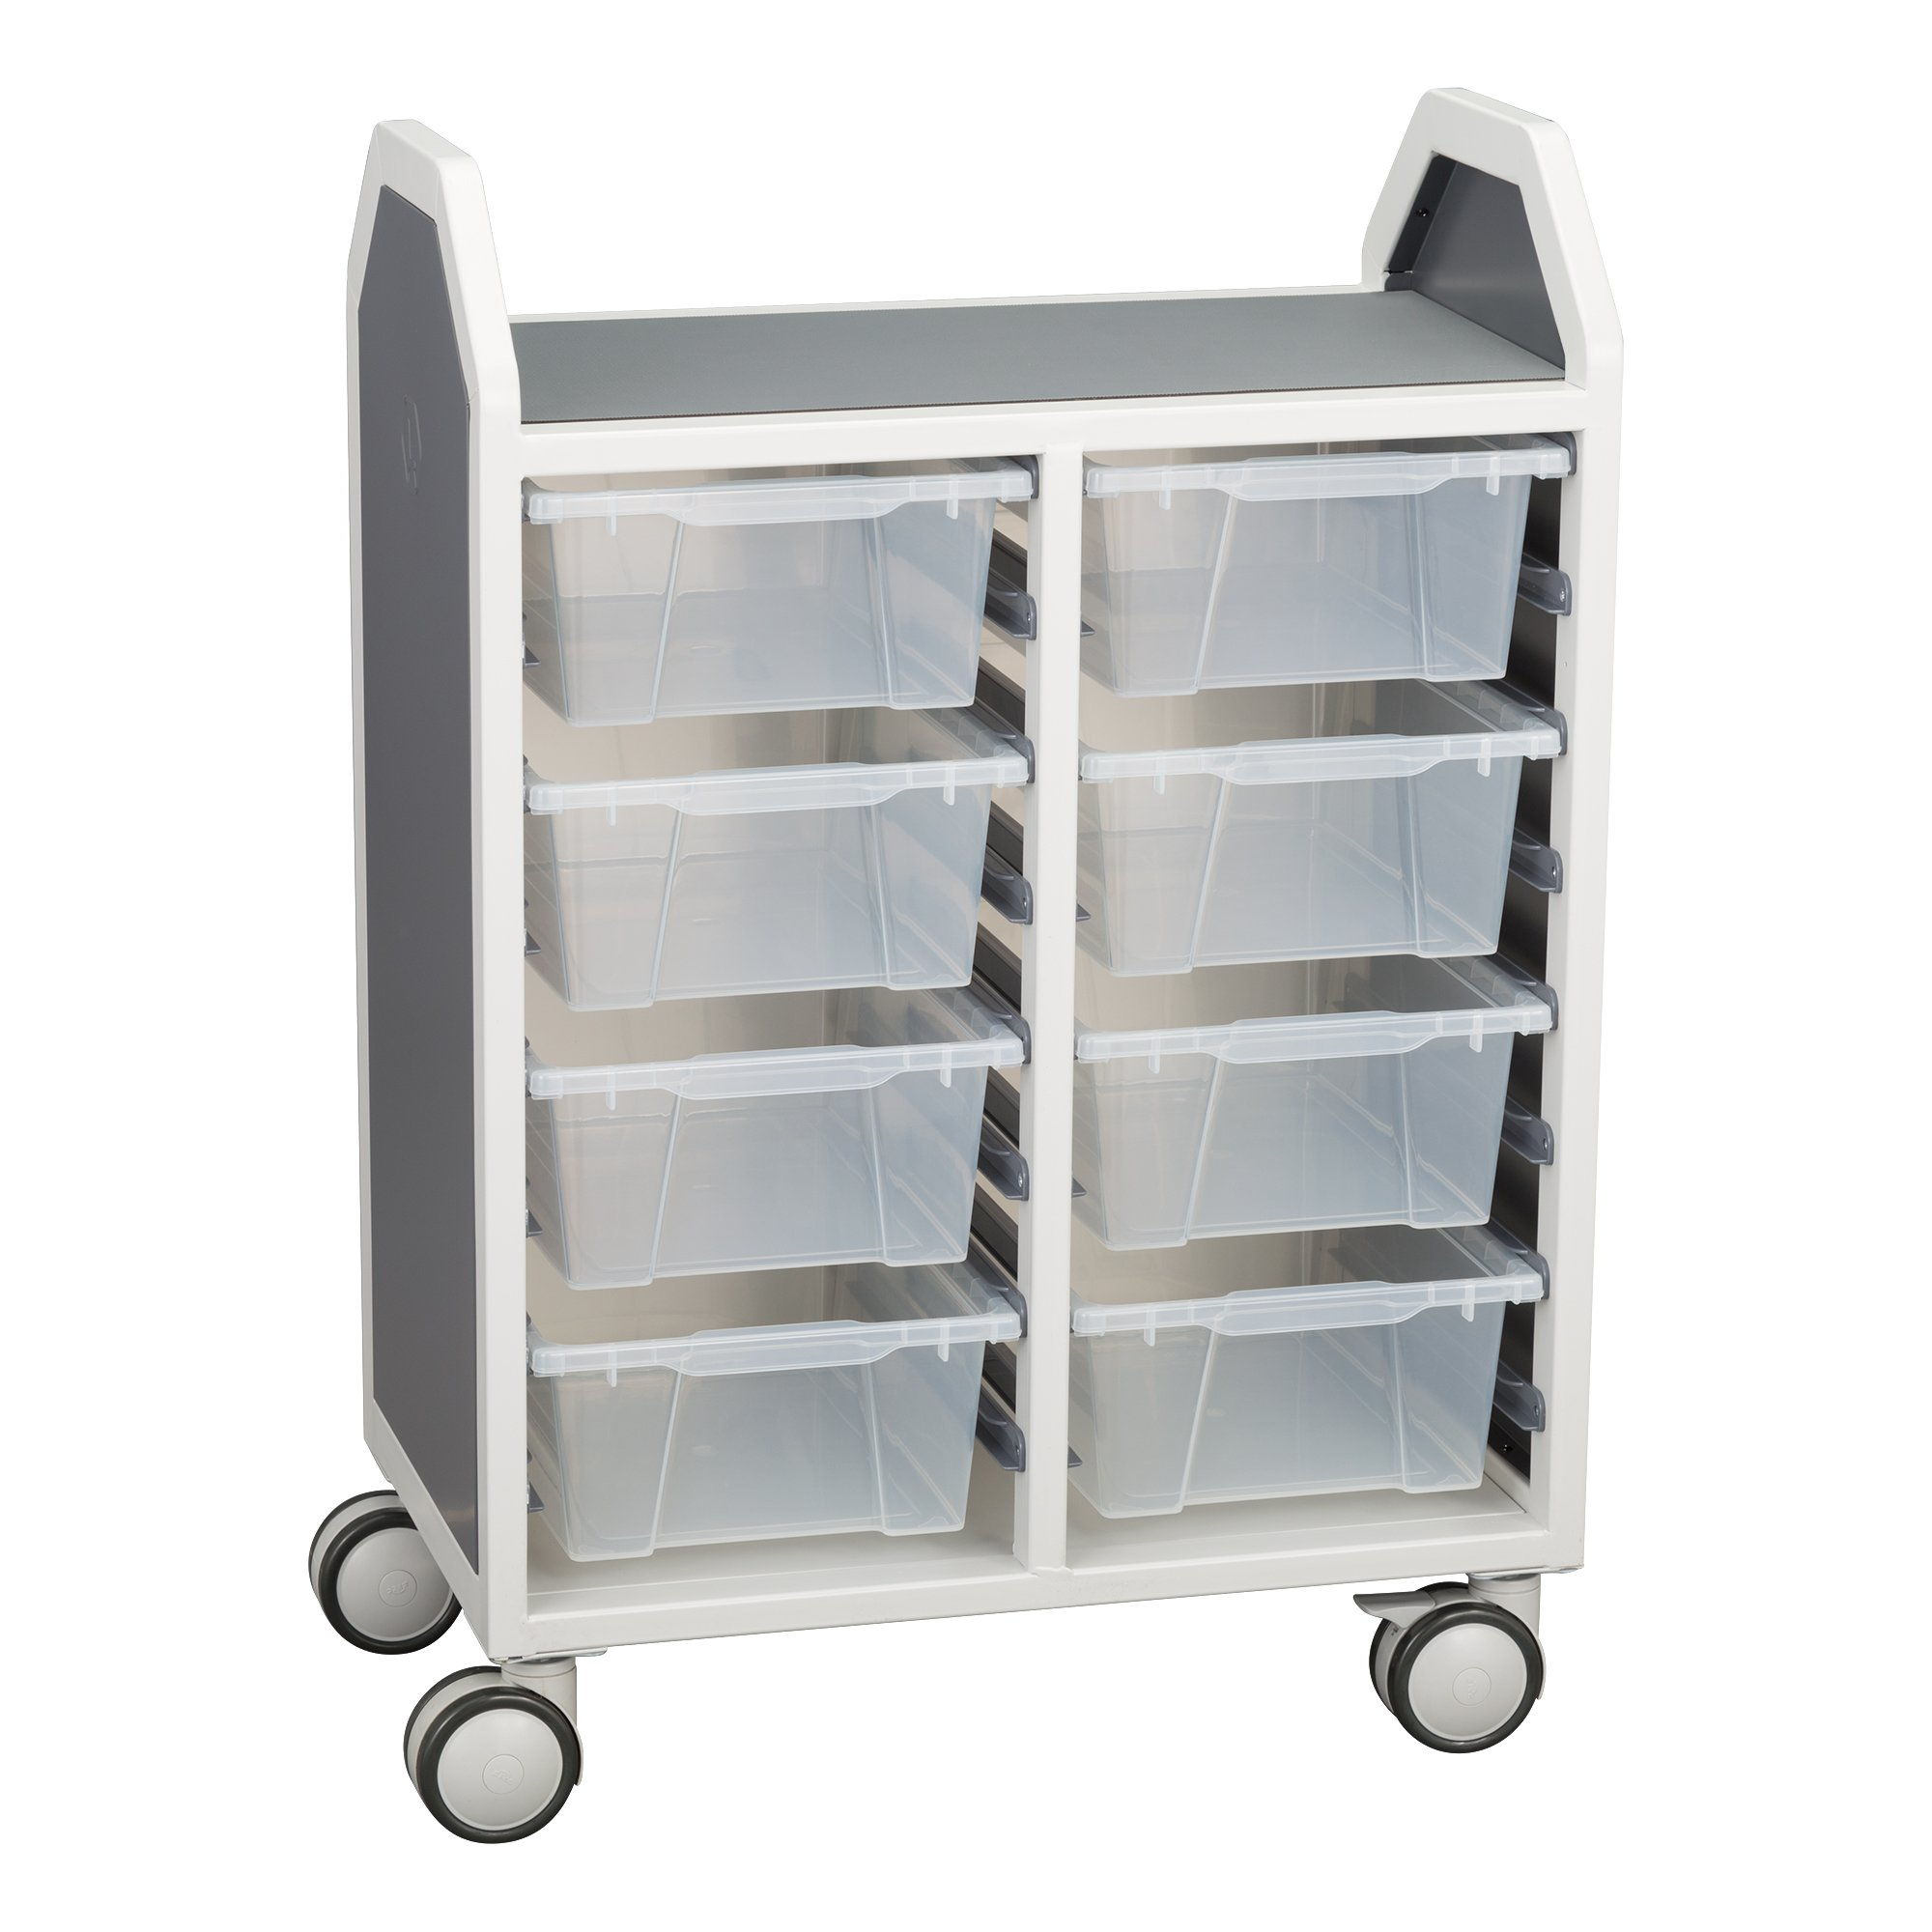 Learniture Profile Series Double-Wide Mobile Classroom Storage Cart with 8 Large Bins, LNT-GNO3041-PKAL-SO